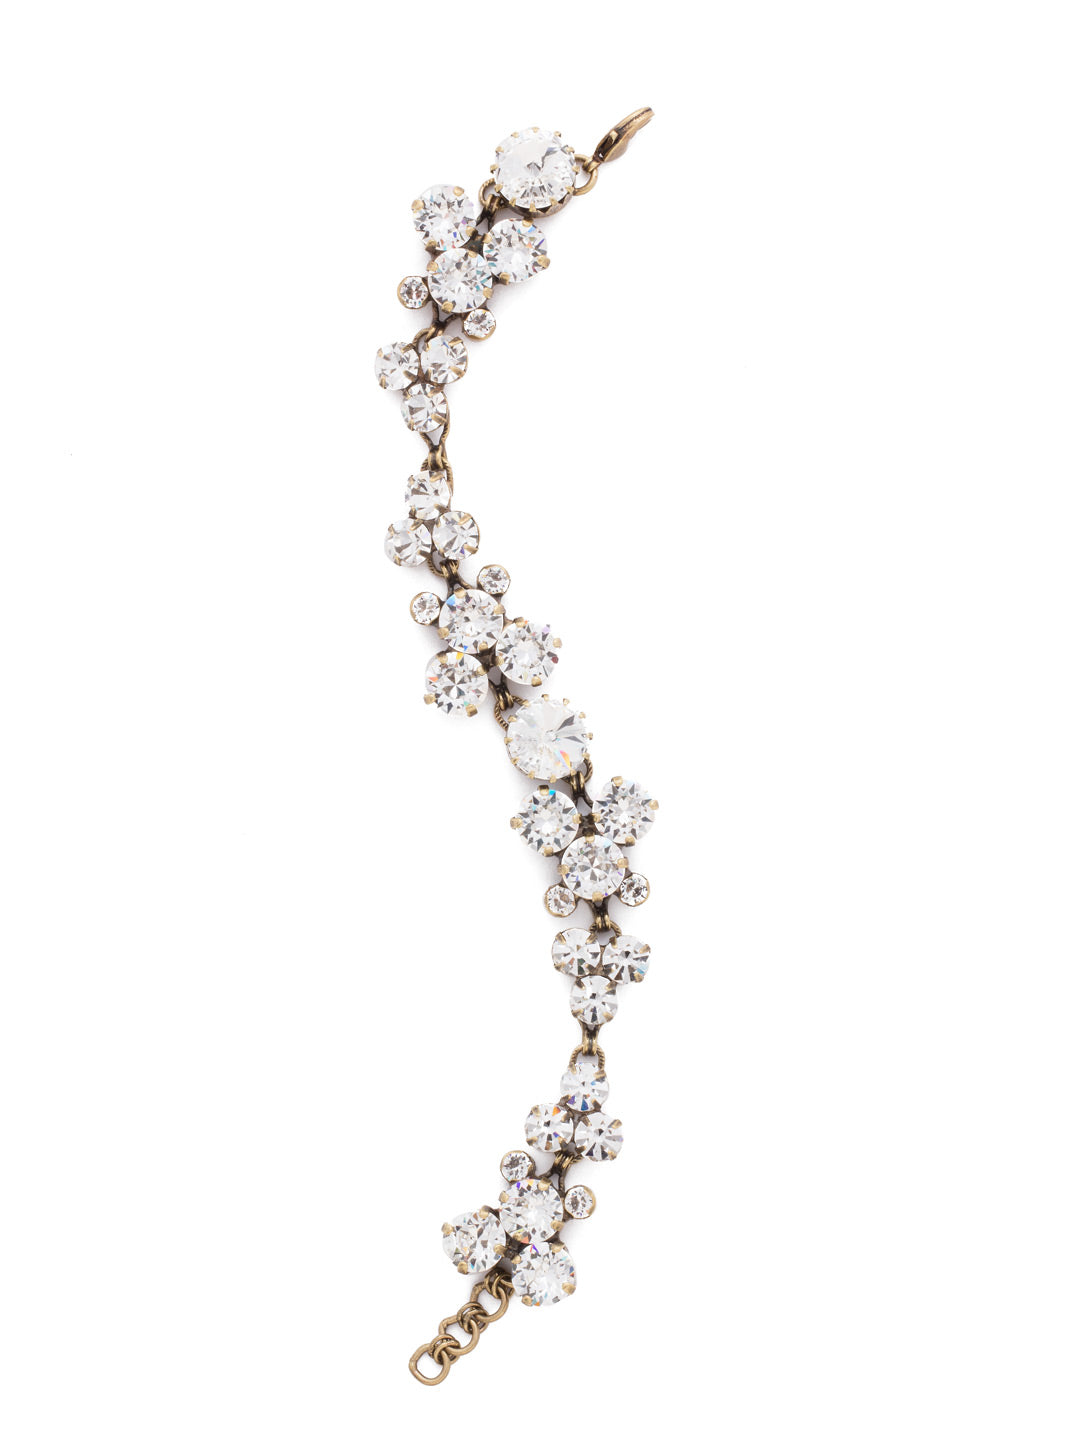 Well-Rounded Tennis Bracelet - BDH24AGCRY